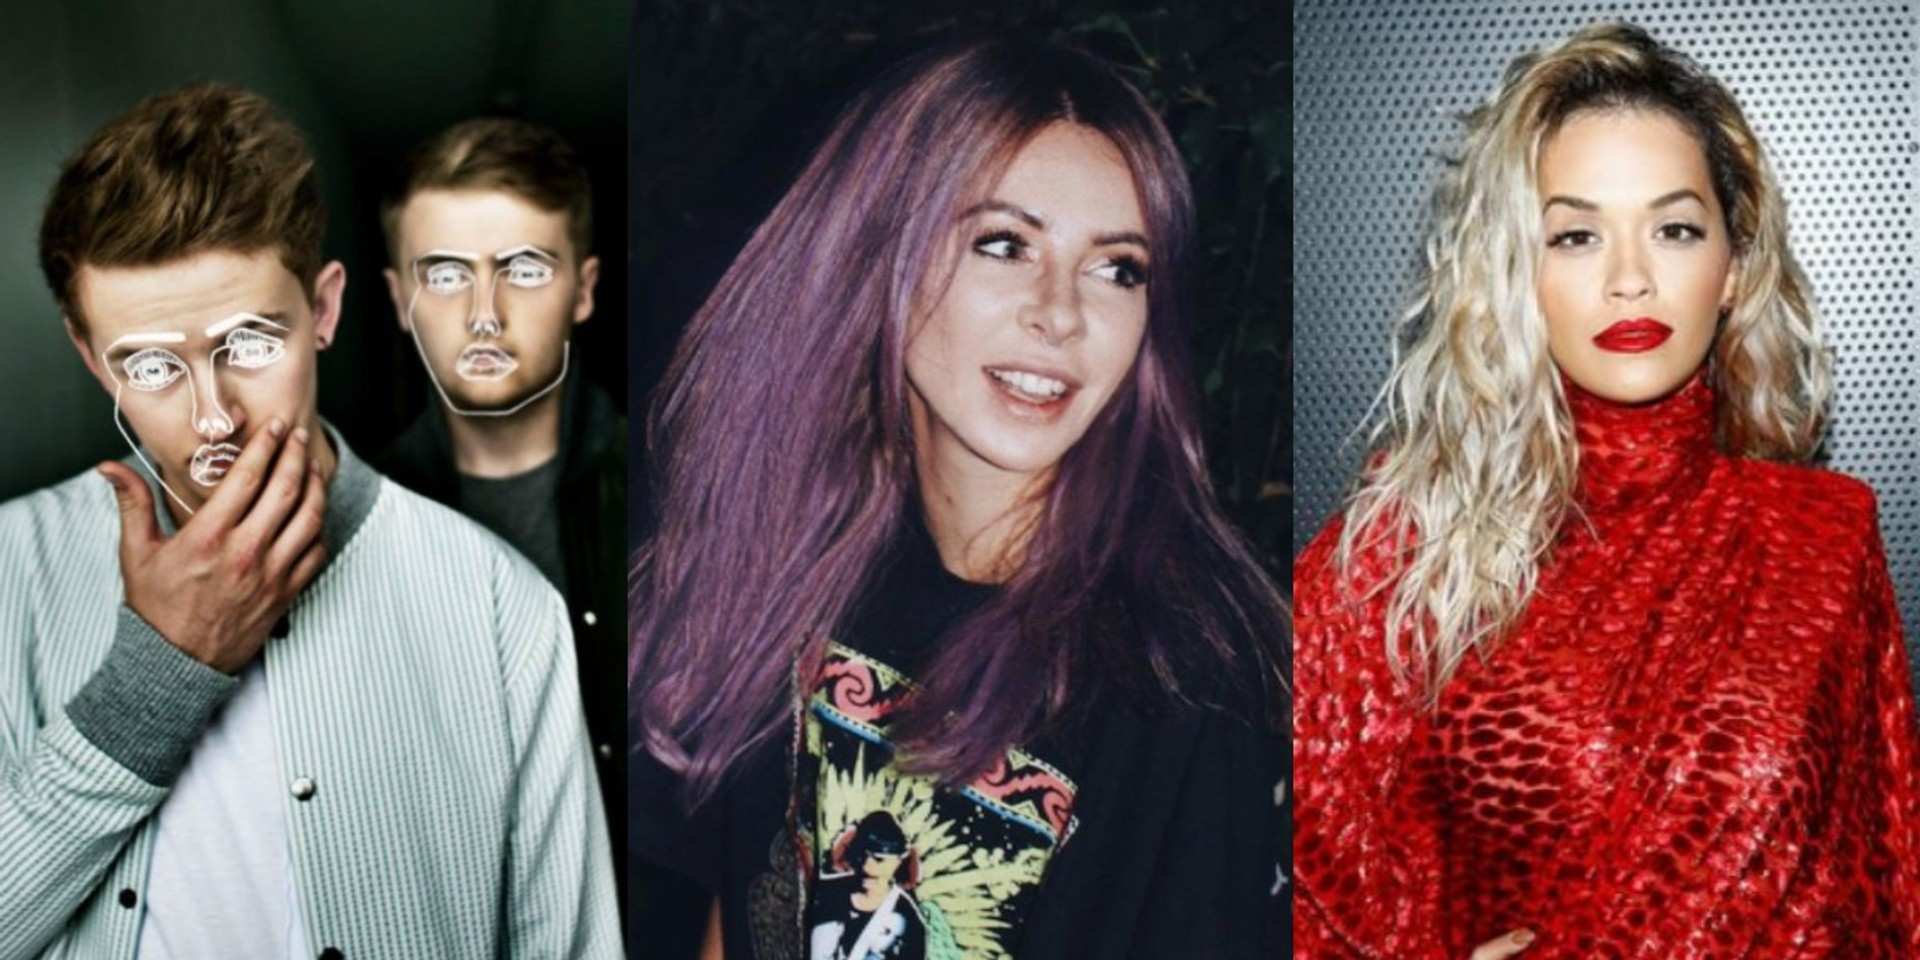 SHVR Ground Festival 2018 in Jakarta to be headlined by Alison Wonderland, Disclosure... and Rita Ora